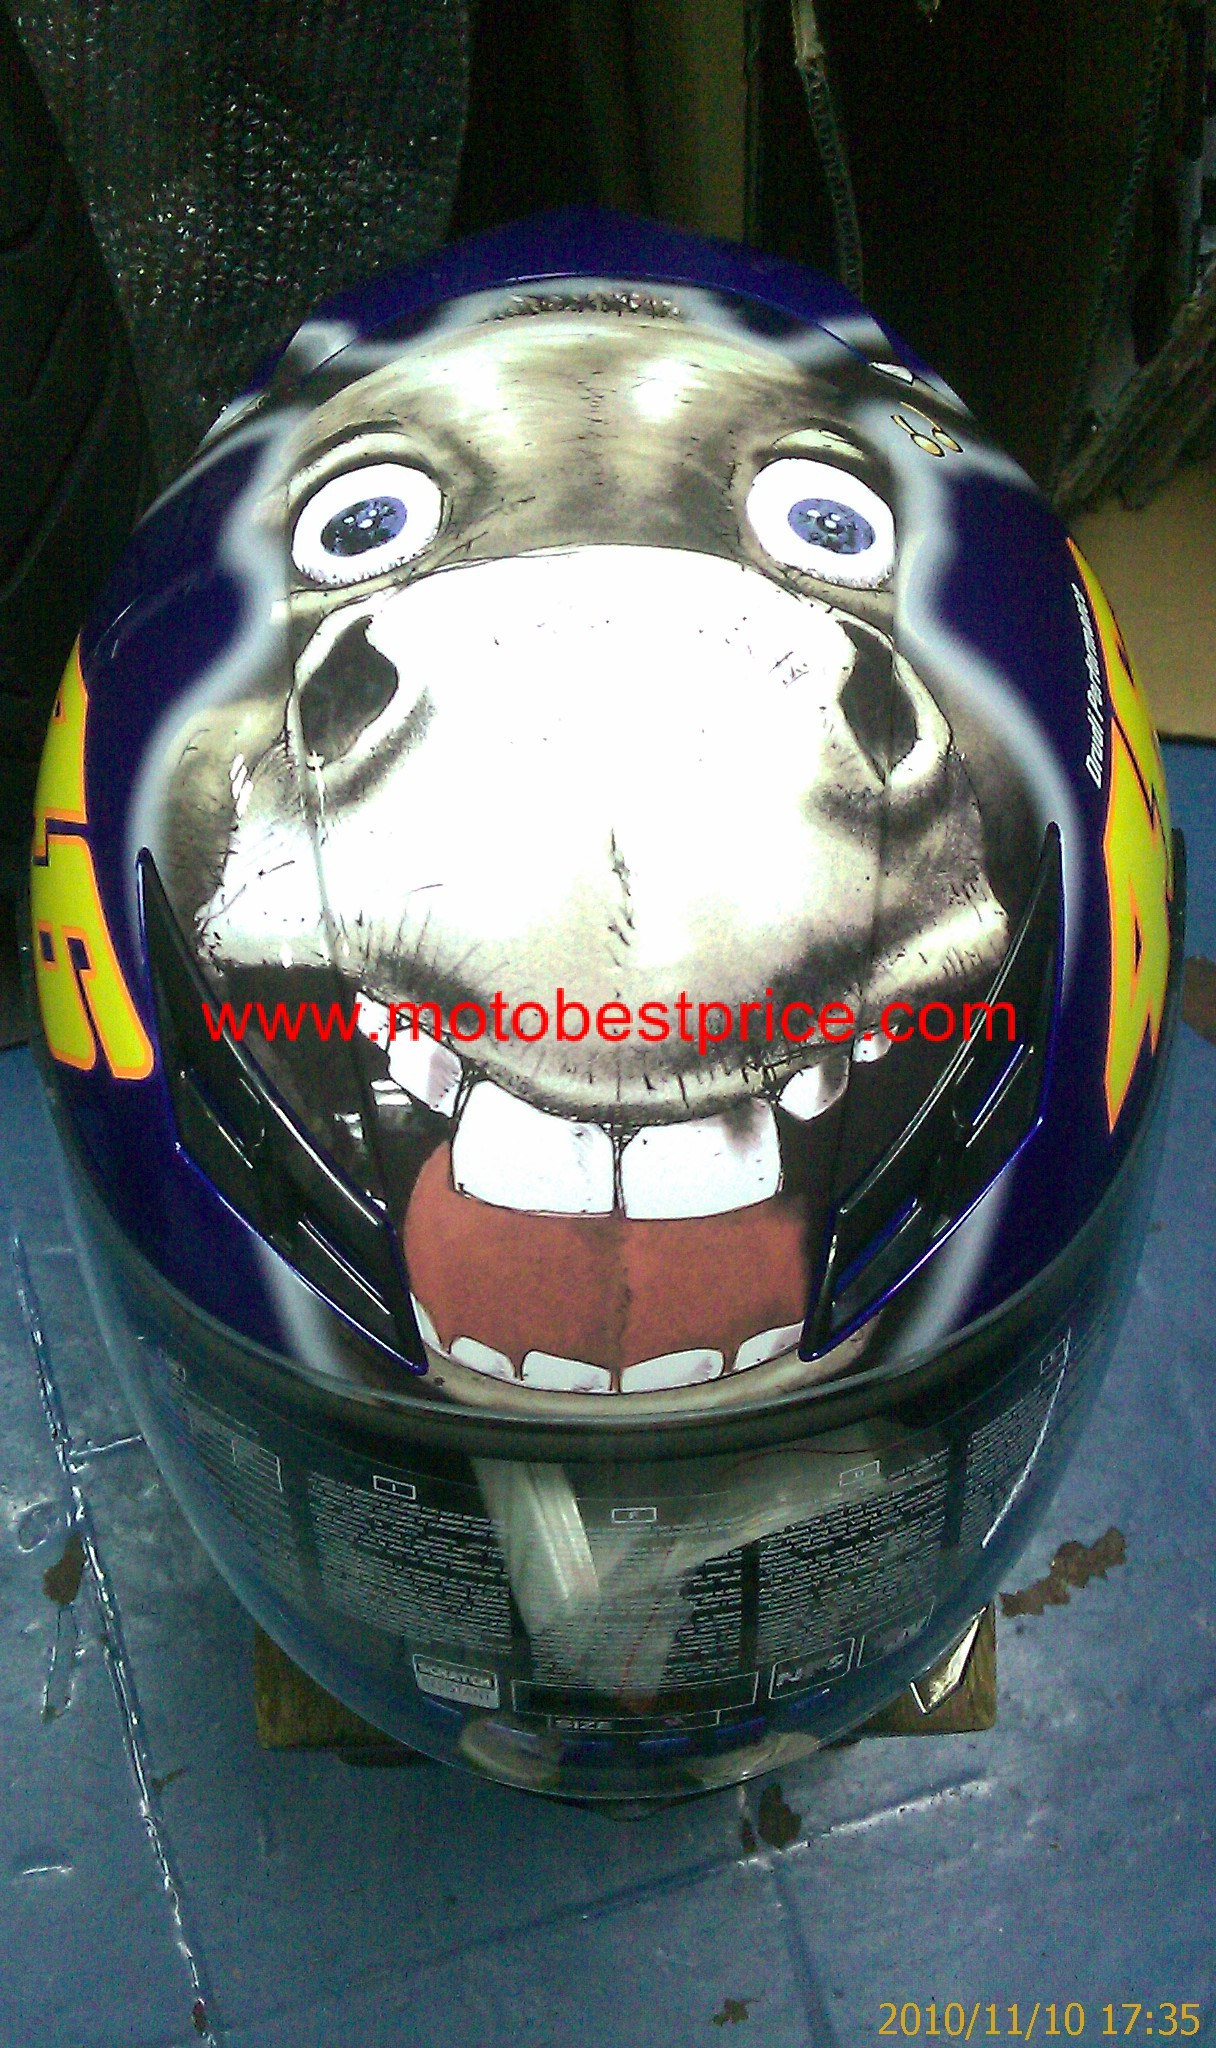 FOR SALE: AGV VALENTINO ROSSI DONKEY HELMET